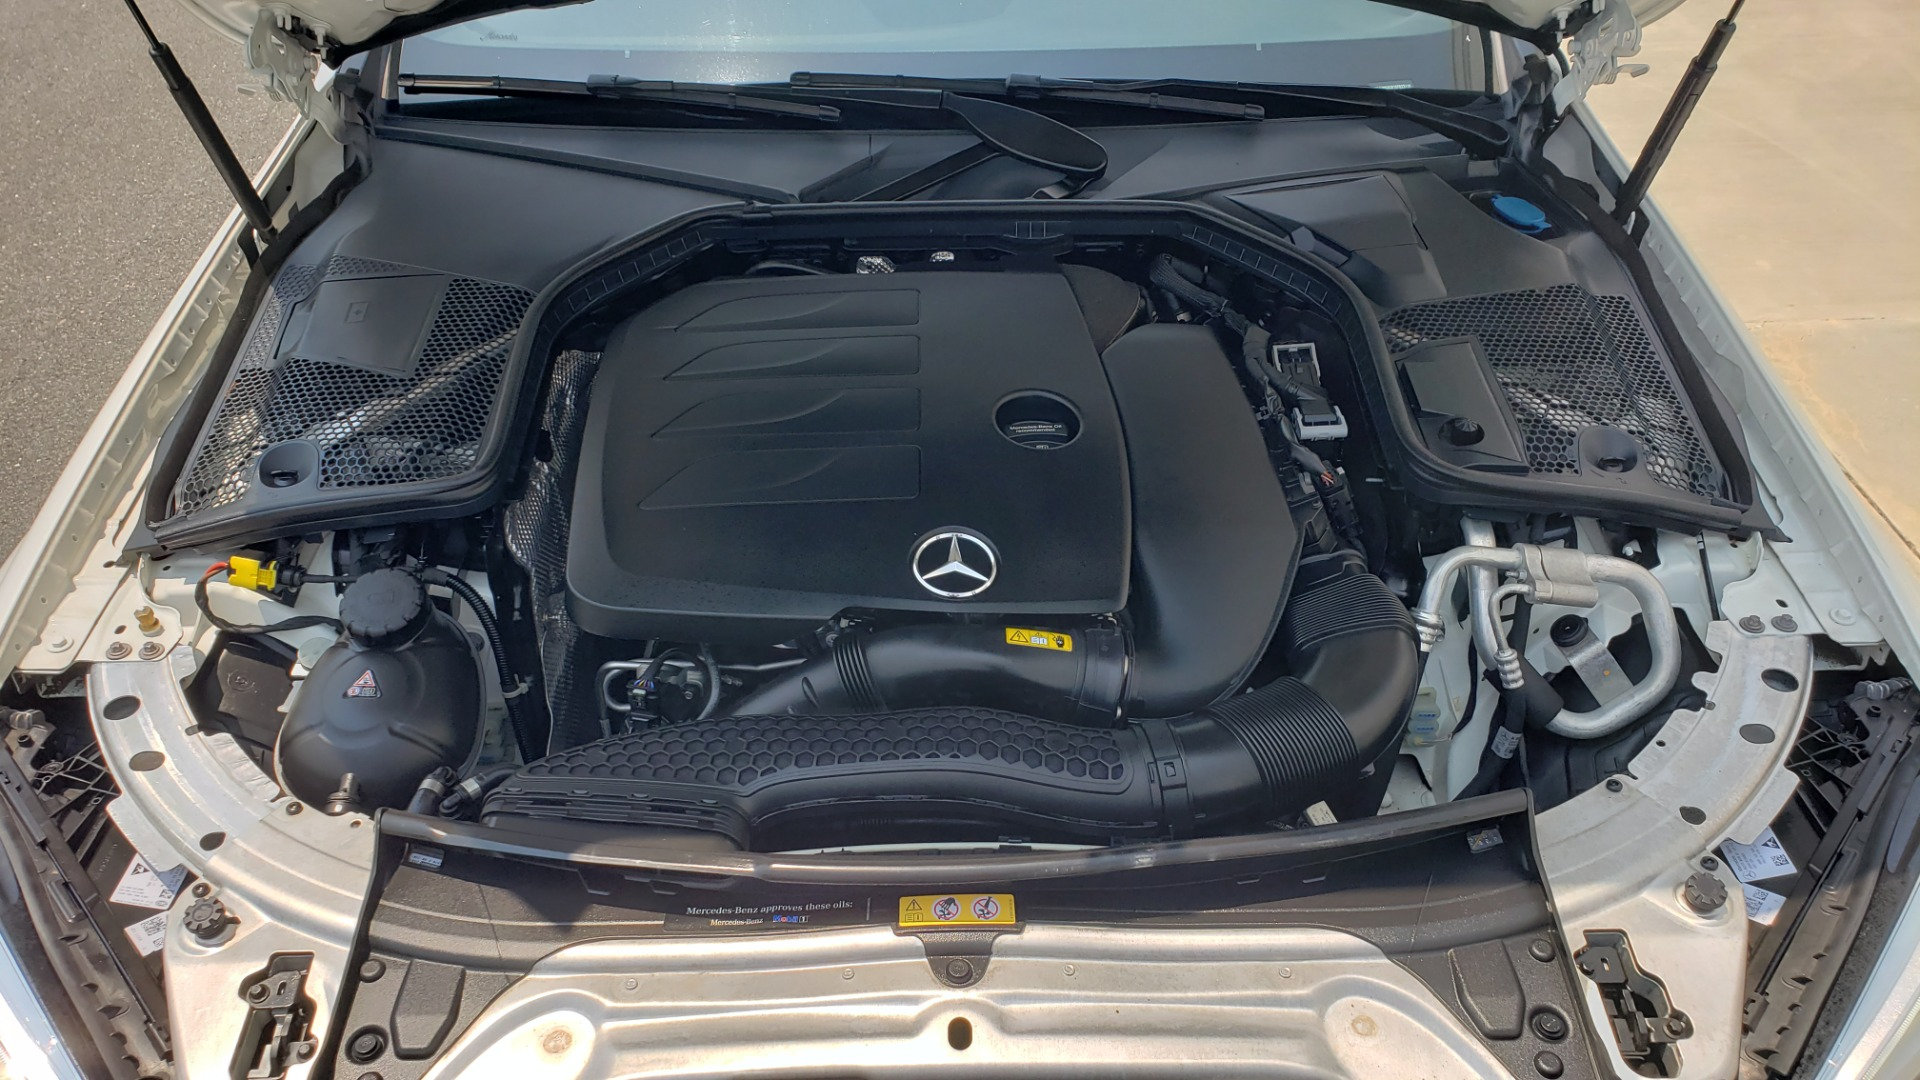 Used 2019 Mercedes-Benz C-CLASS C 300 CABRIOLET 2.0L / AUTO / NAV / HD RADIO / REARVIEW for sale $46,995 at Formula Imports in Charlotte NC 28227 20